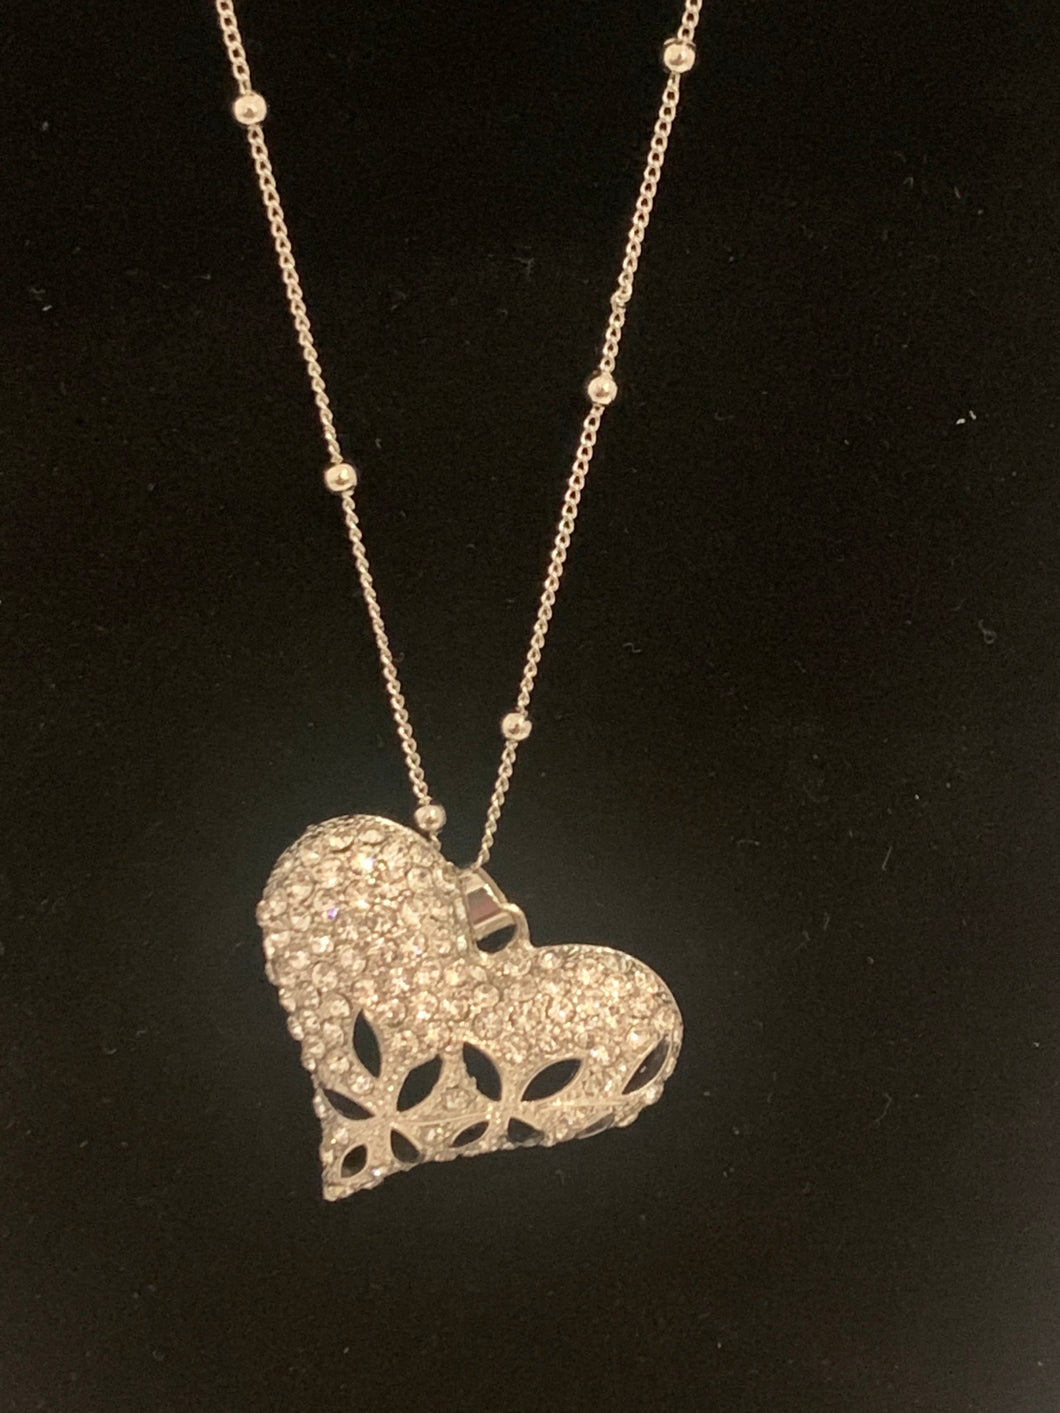 Silver heart necklace with detailed chain.